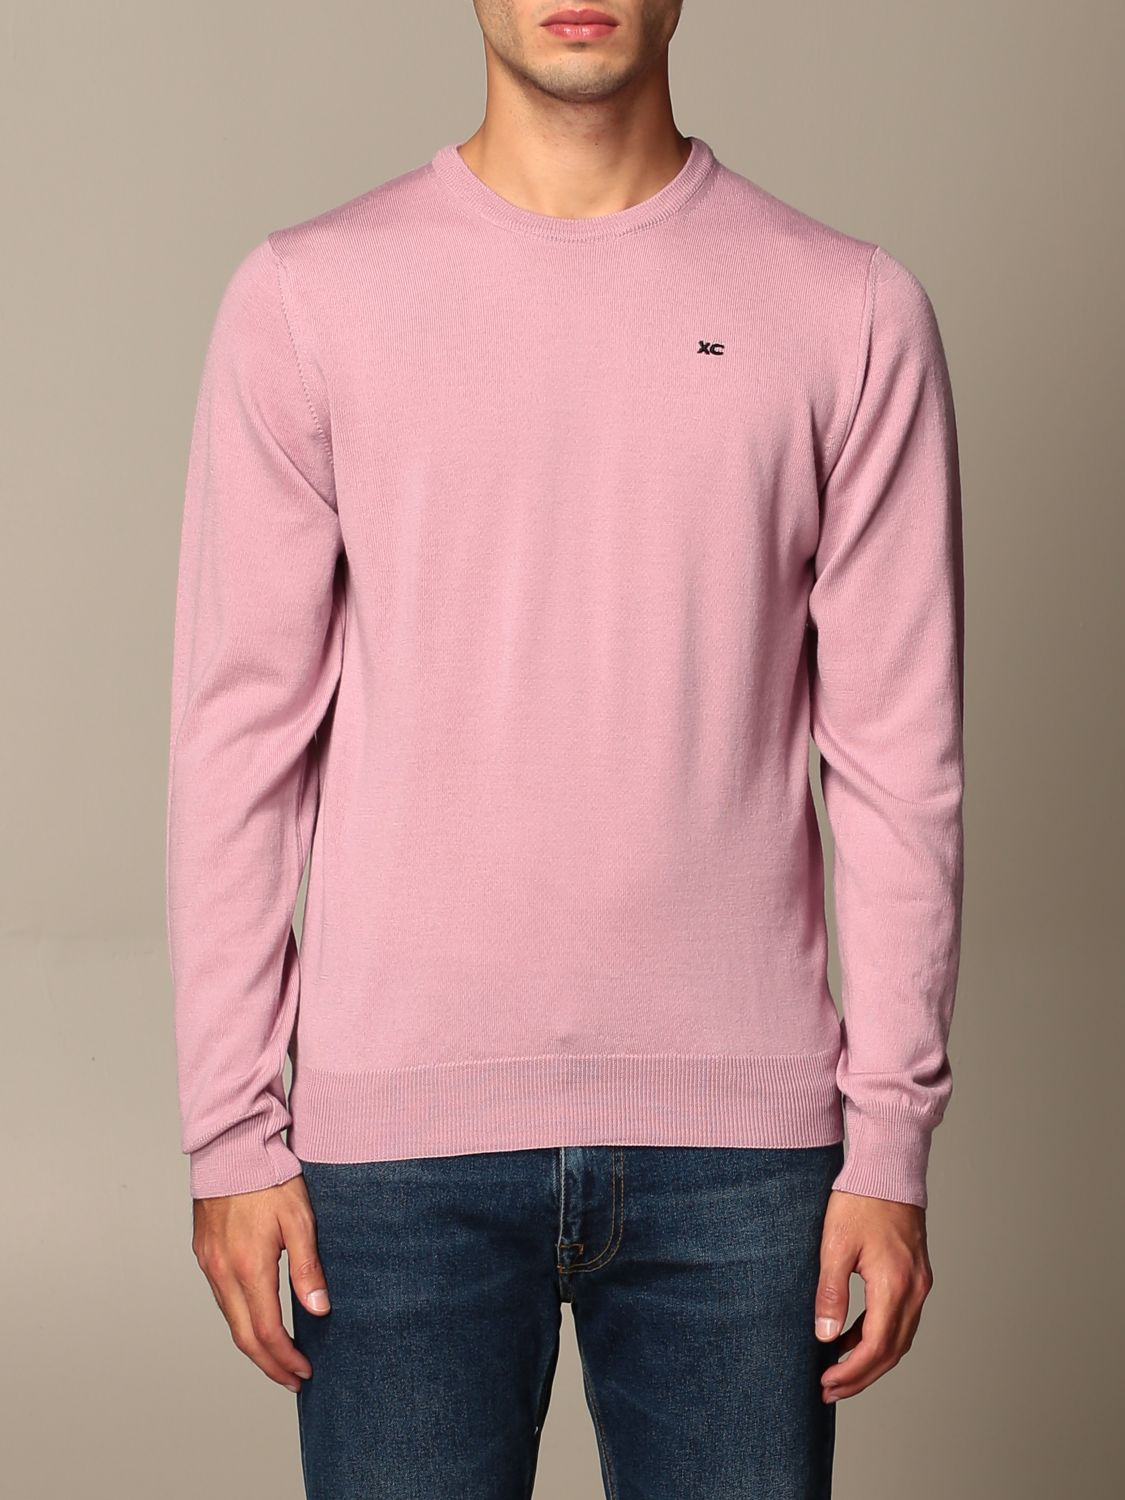 Pull Xc: Pull homme Xc poudre 1